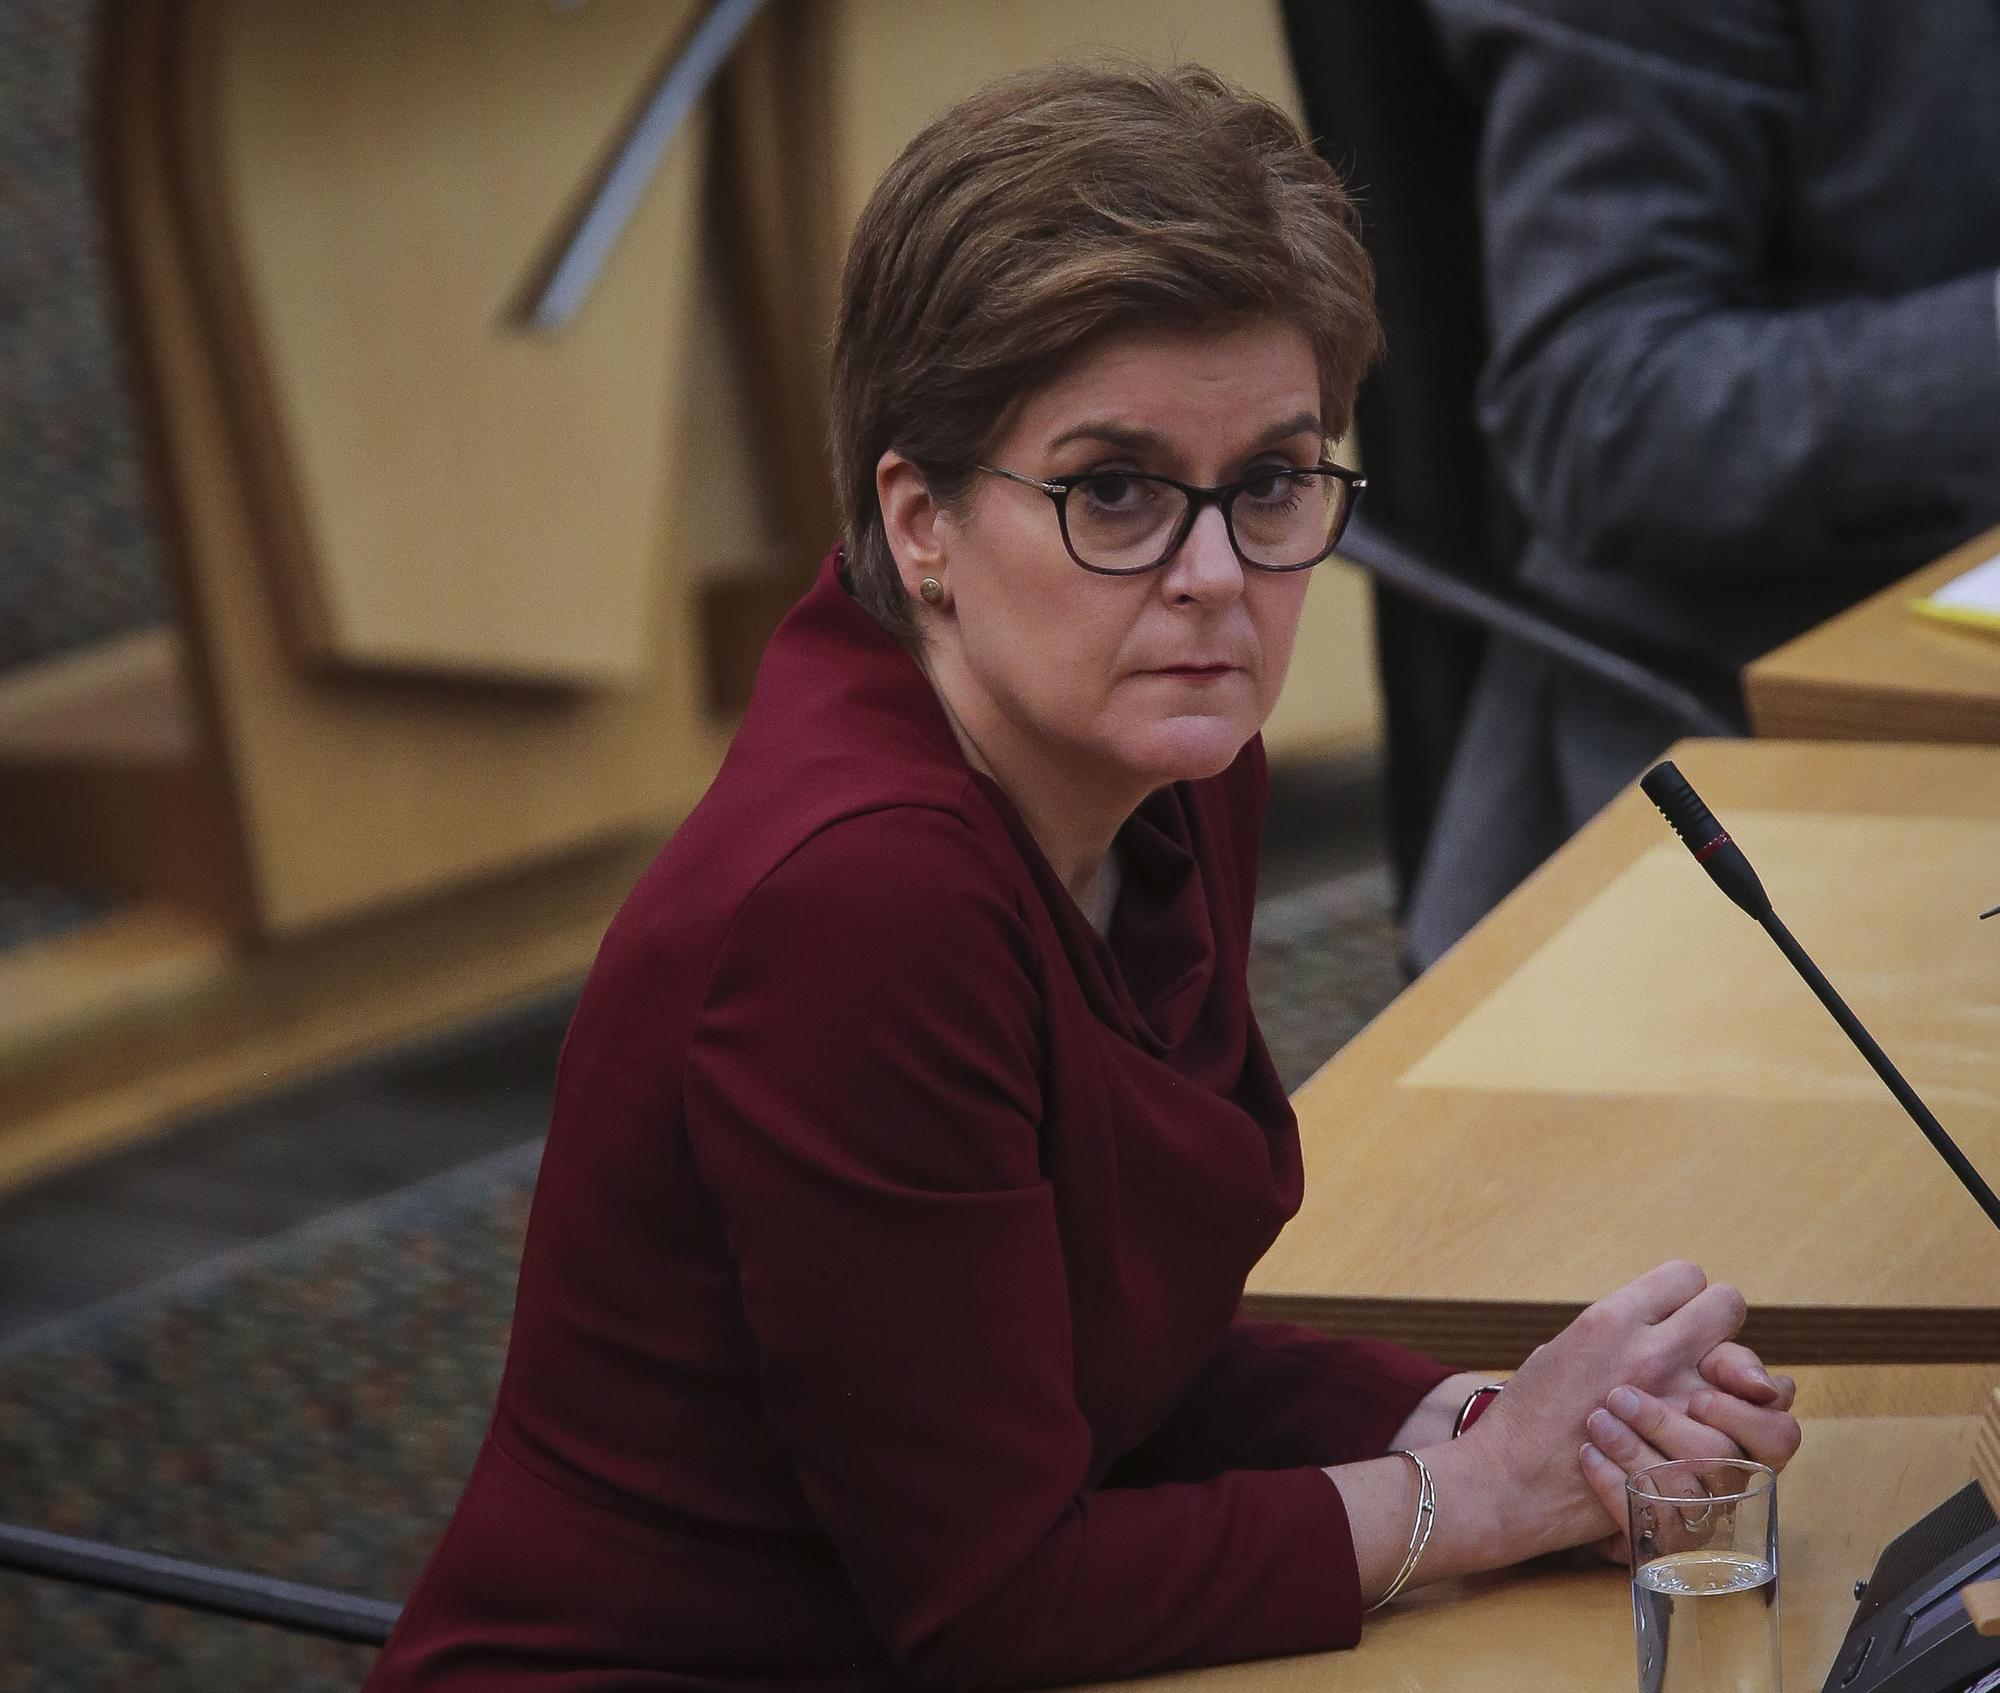 scotsman.com - Jane Bradley - COP26: Nicola Sturgeon says continued oil and gas extraction is 'wrong'